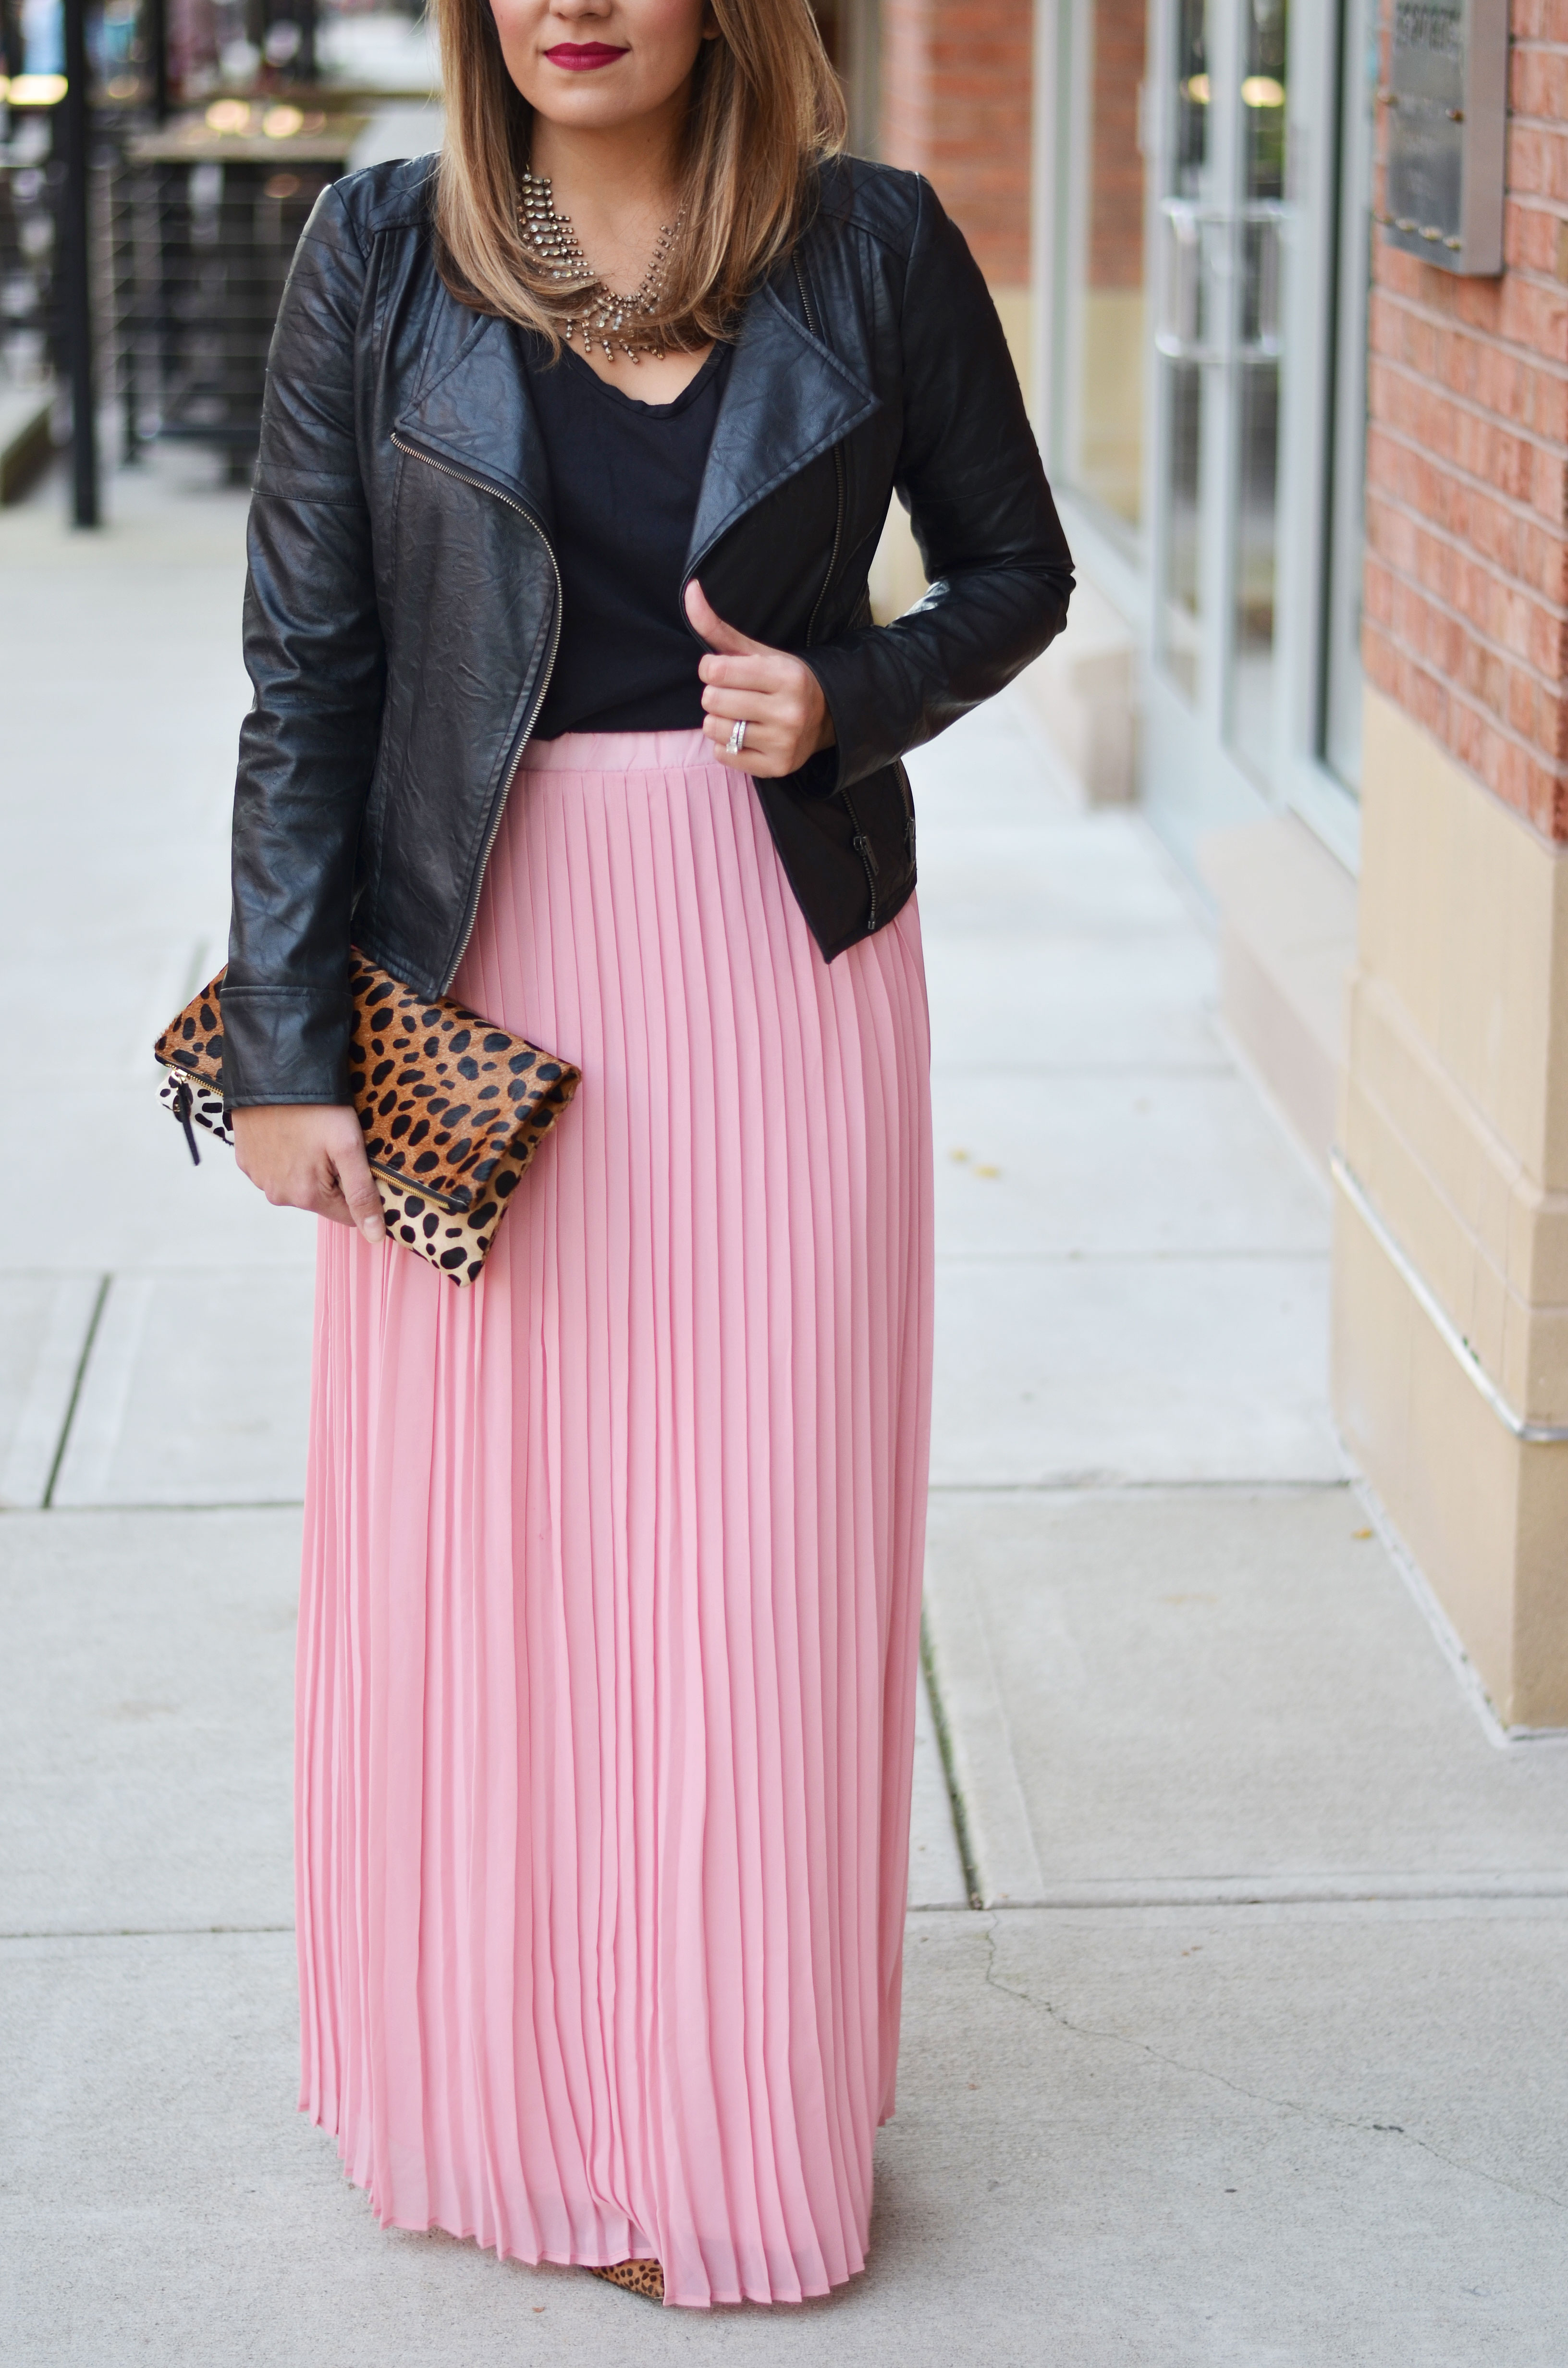 how to wear a white maxi skirt in winter